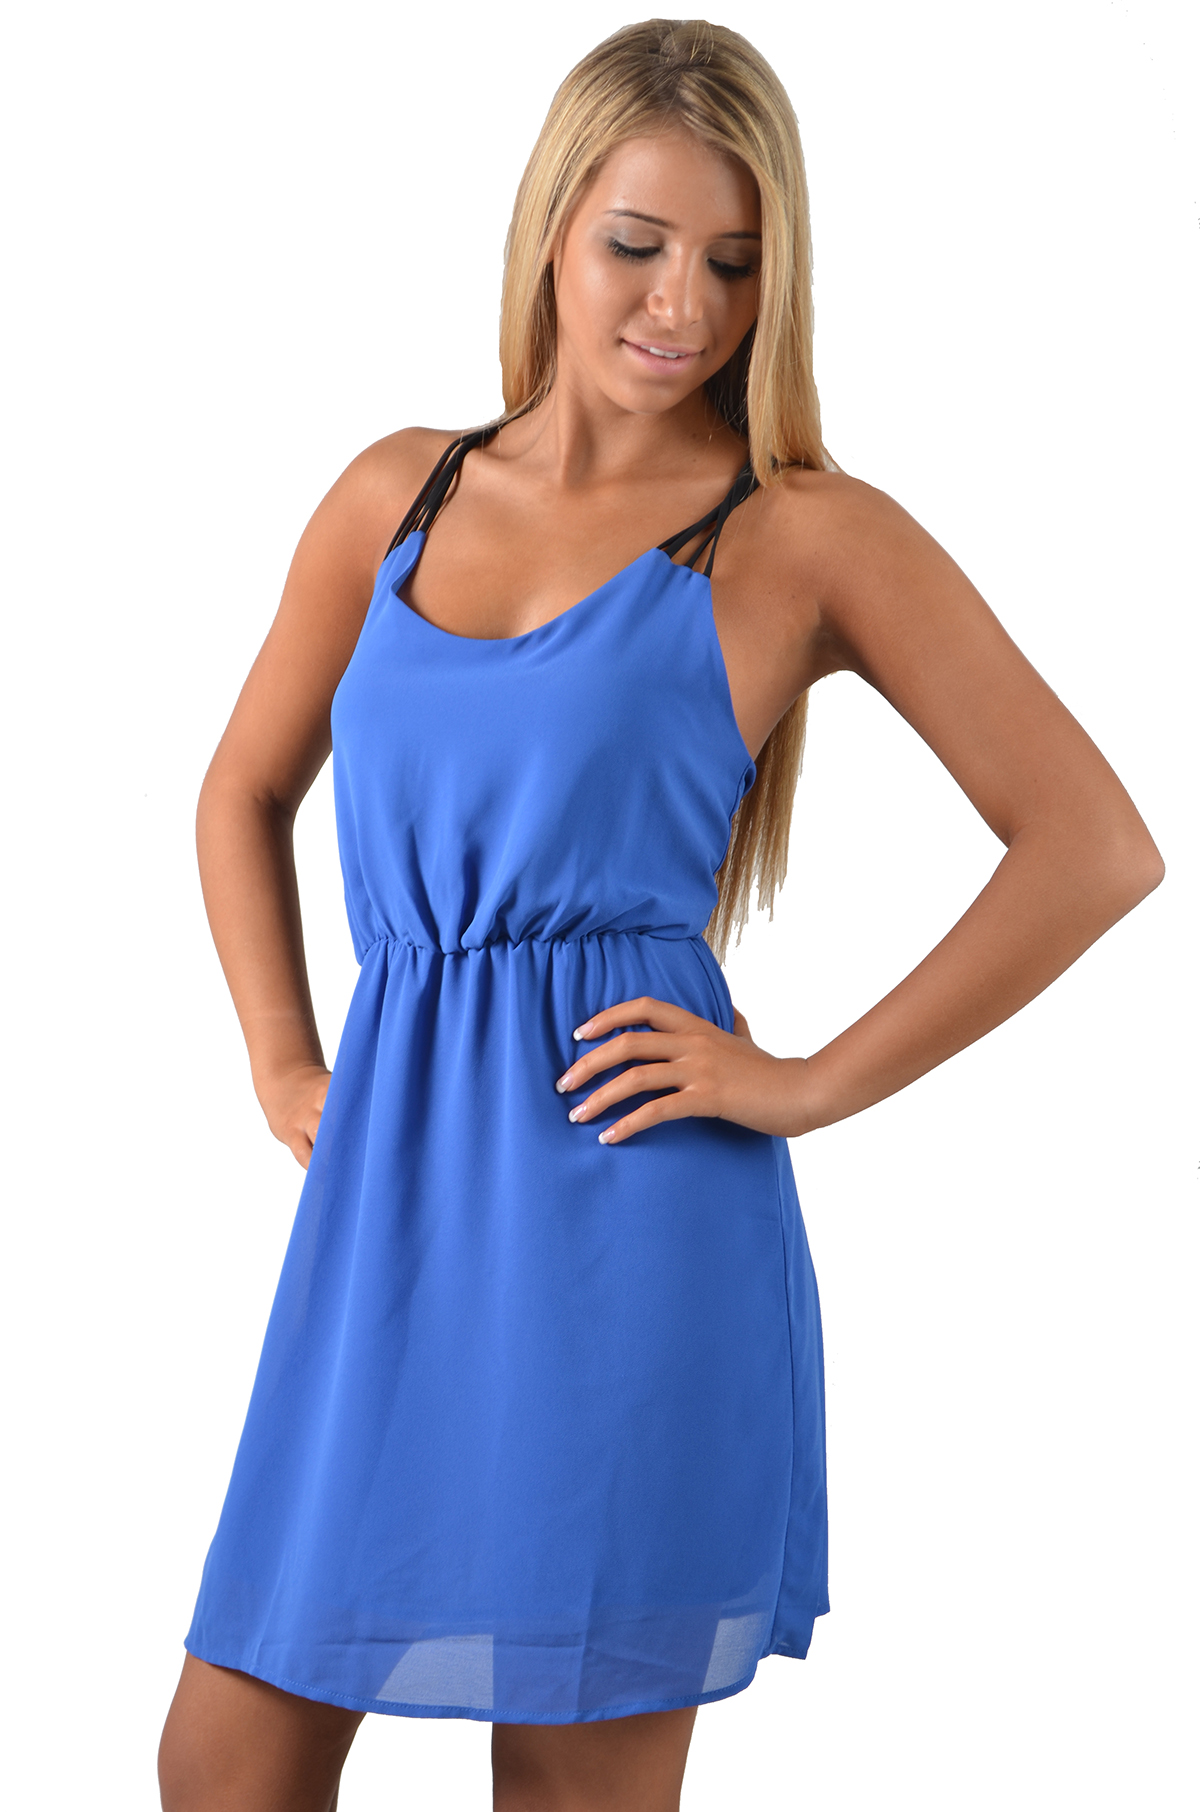 Day Dress - Periwinkle Day Dress with Stringy | UsTrendy